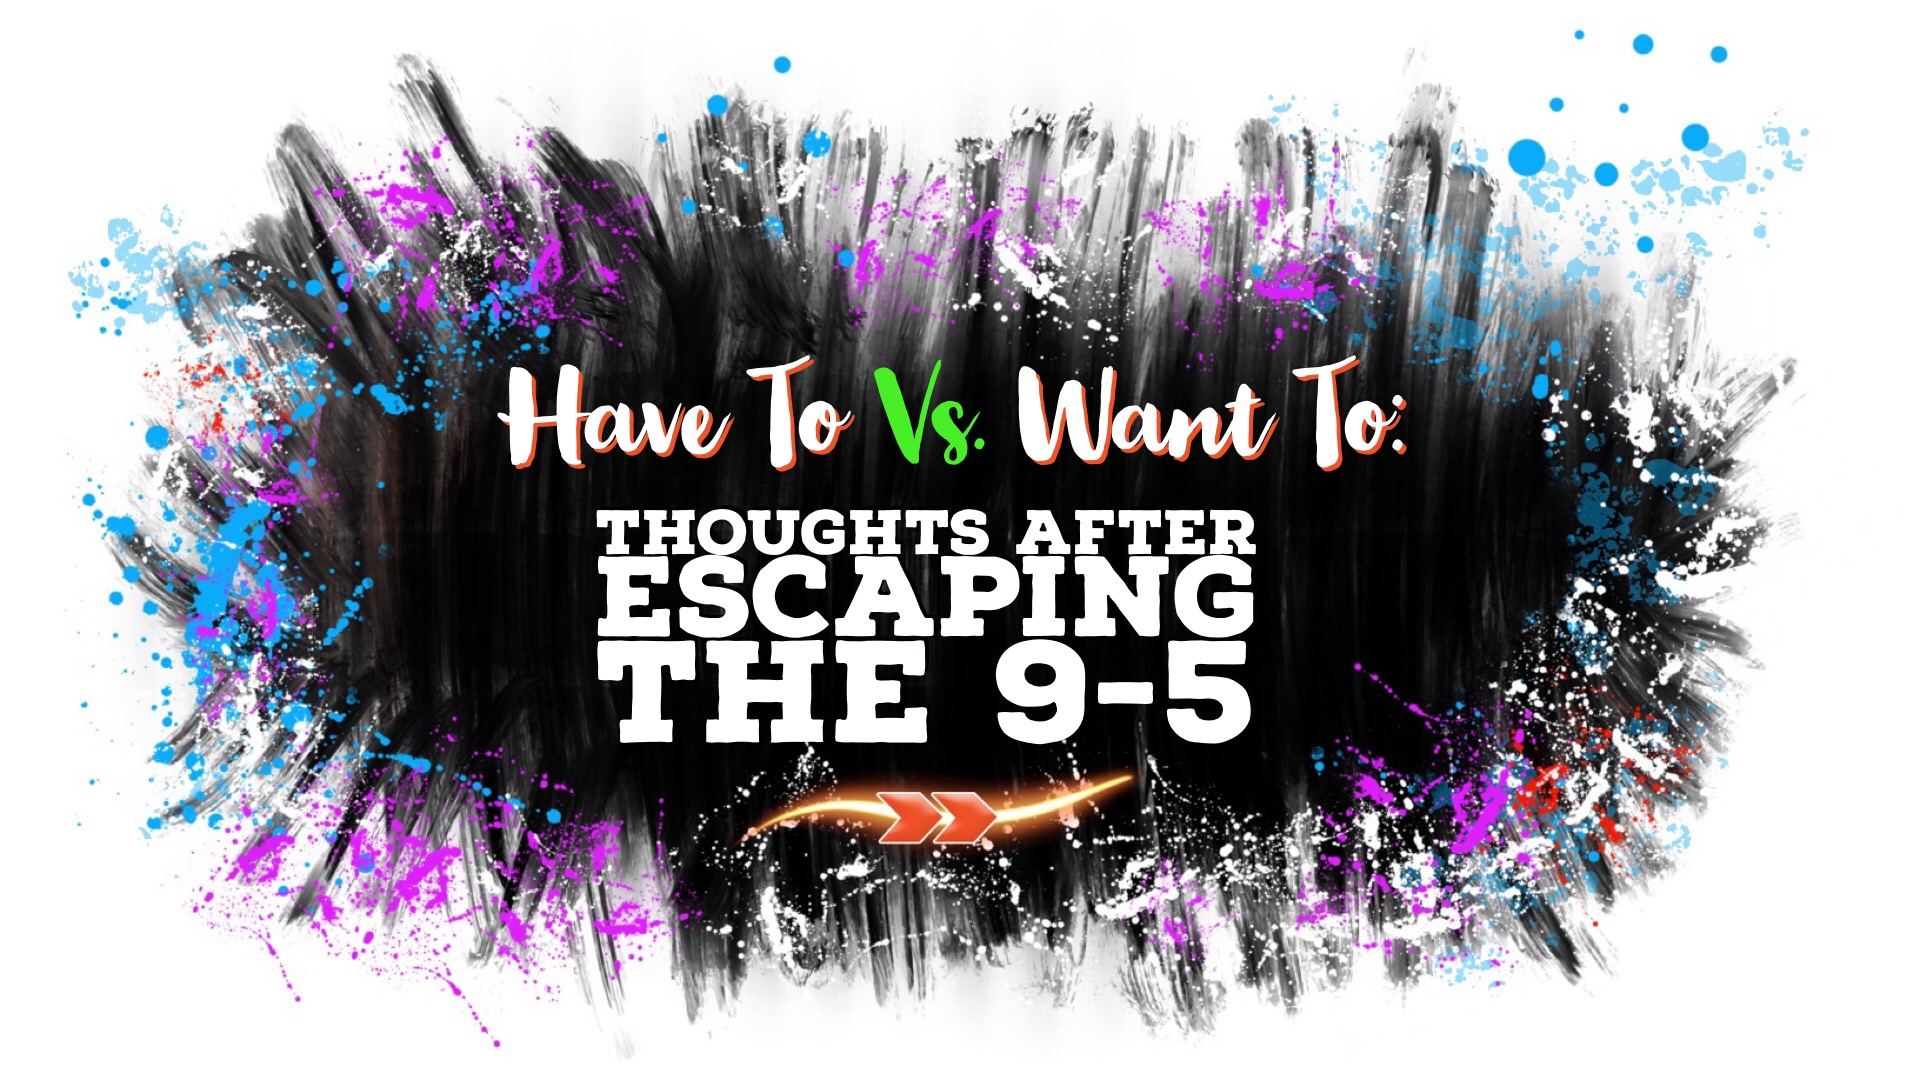 Have To Vs. Want To: Thoughts After Escaping the 9-5